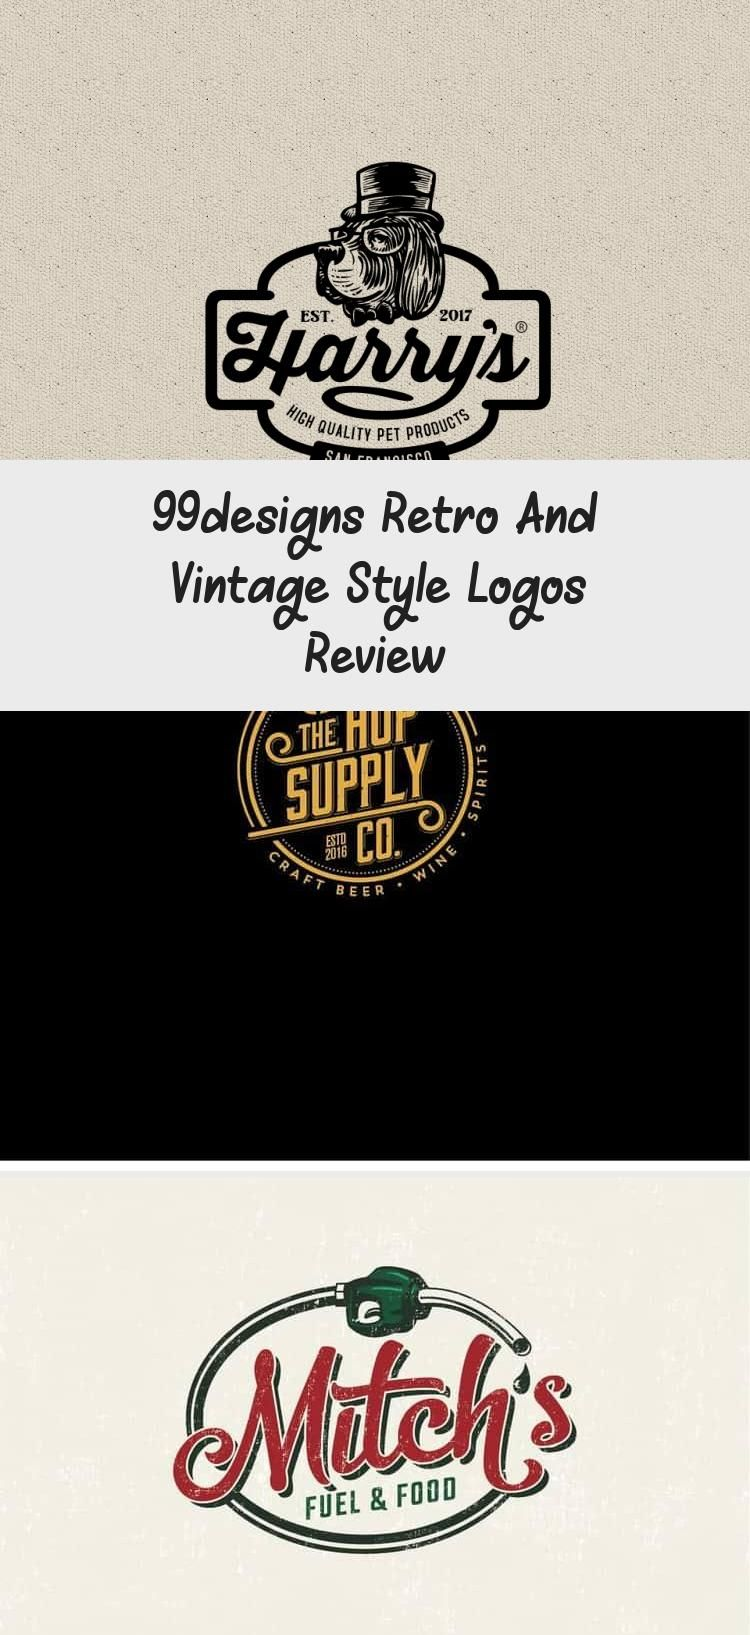 Retro Logos Are Cool And Trending Check Out These Retro Style Logo Designs All Contest Winners From 99designs Vin In 2020 Retro Logo Design Logo Design Retro Logos